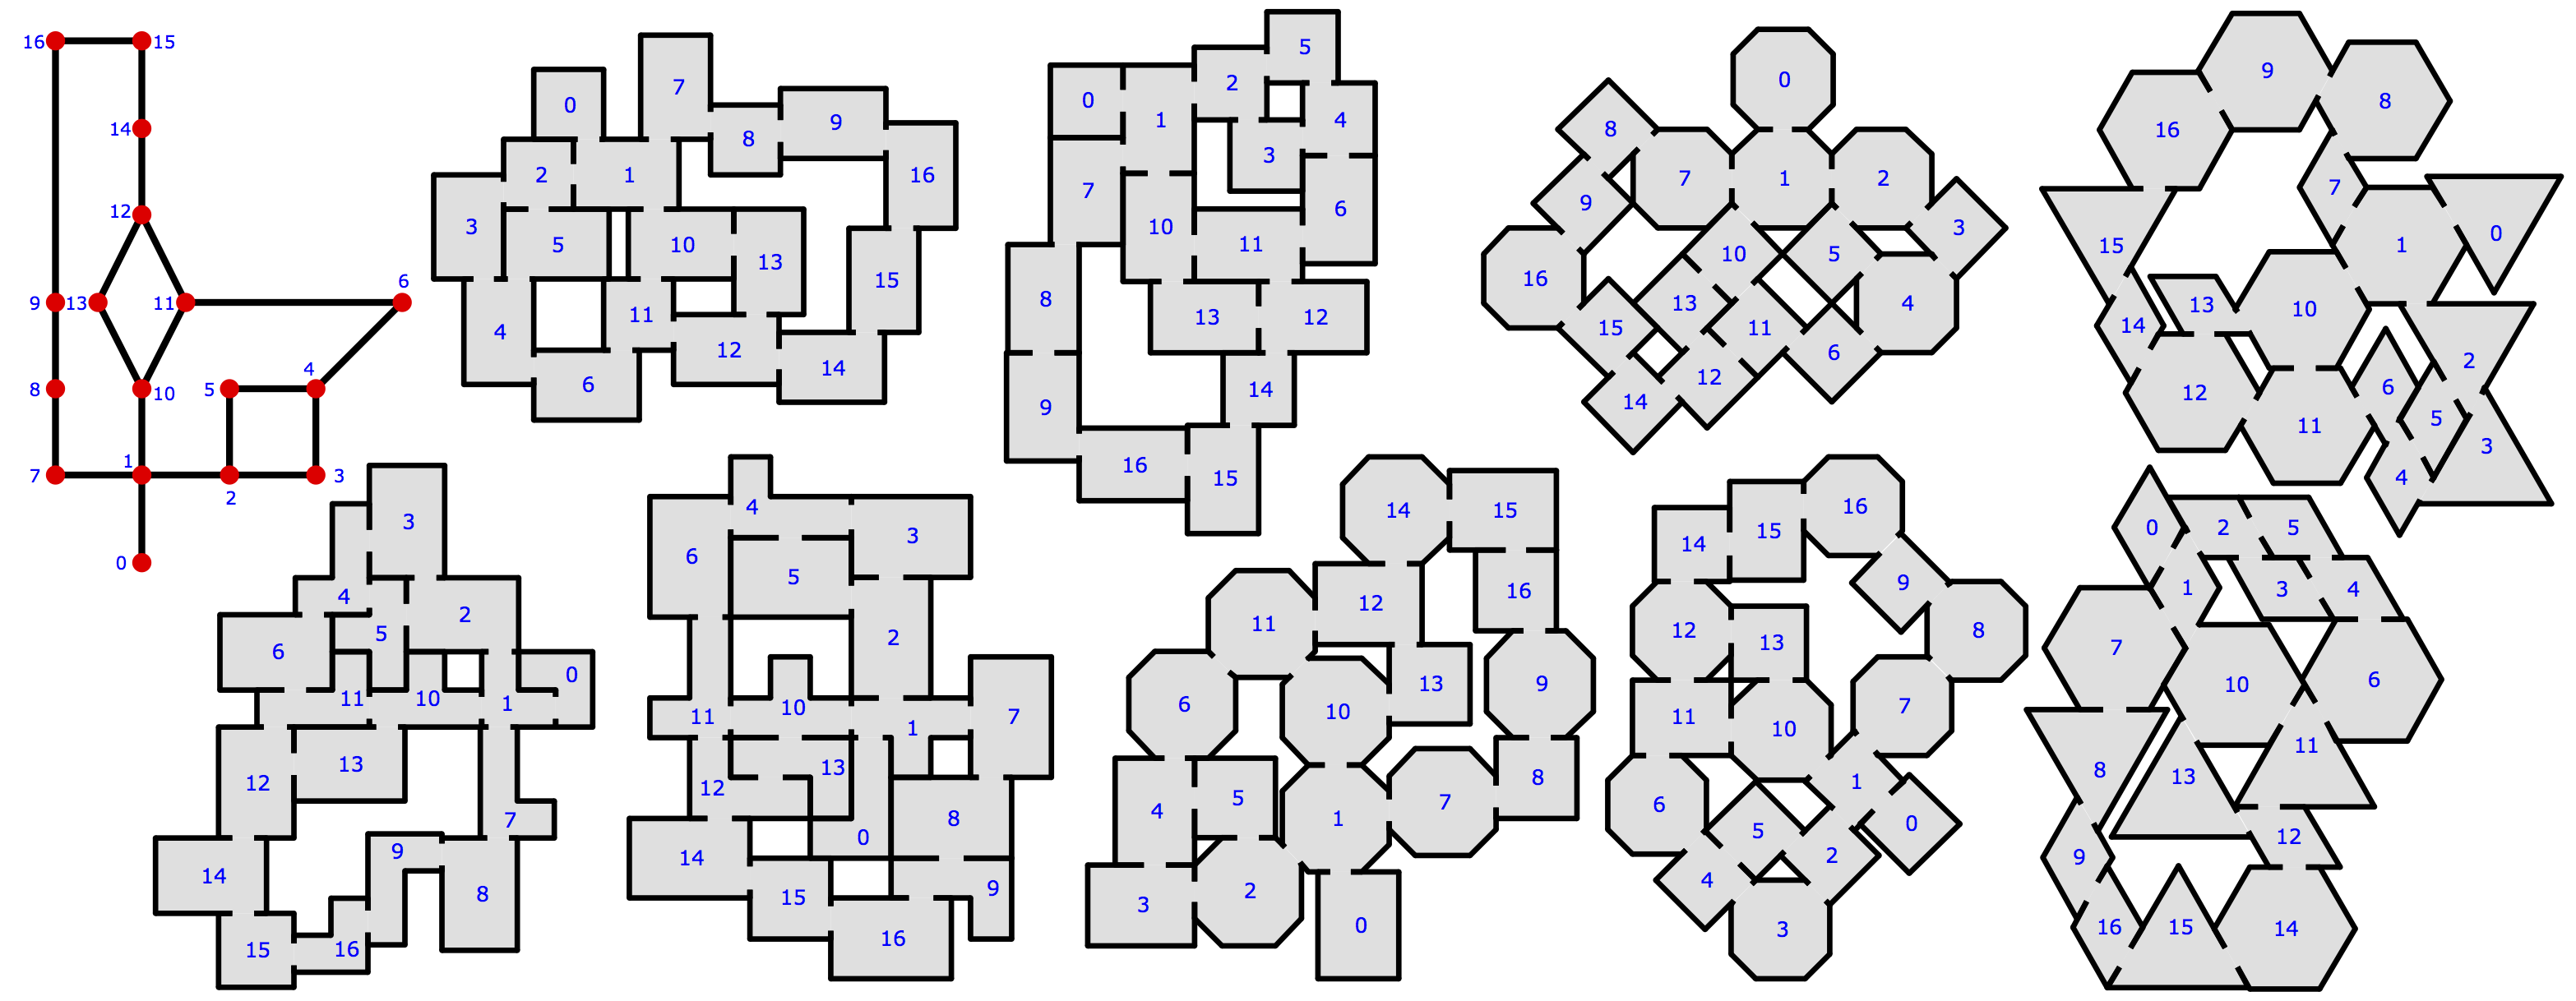 game level layout from design specification